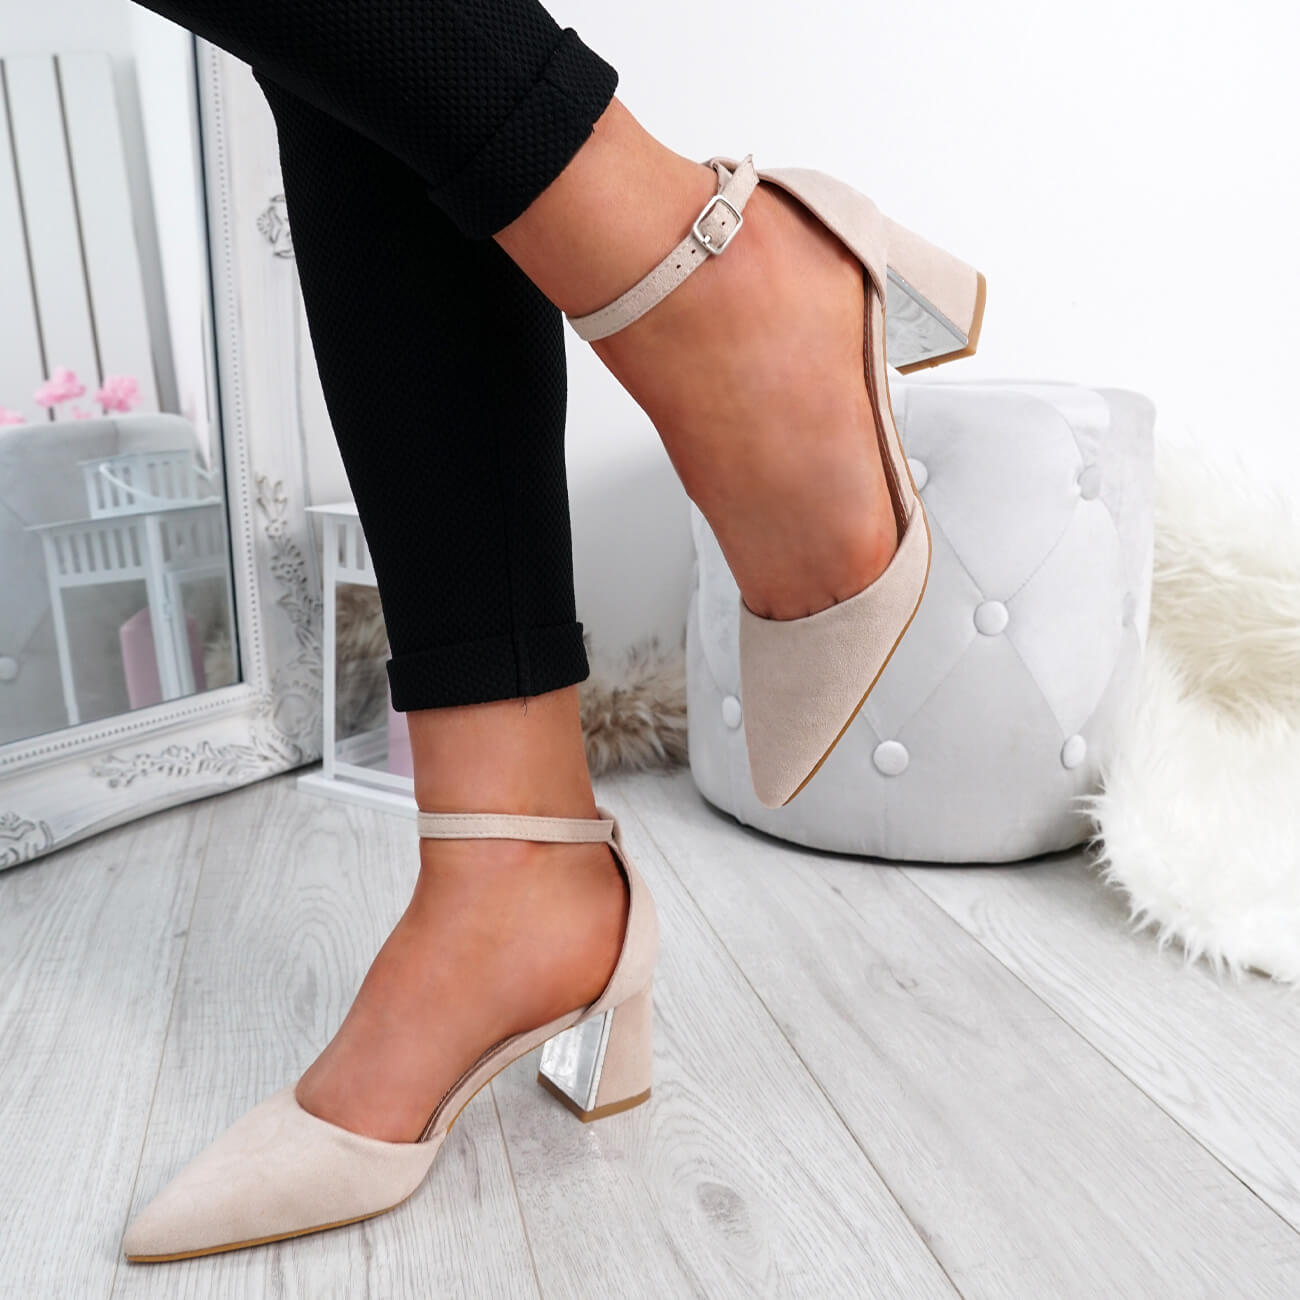 WOMENS-LADIES-ANKLE-STRAP-POINTED-HIGH-BLOCK-HEEL-PUMPS-COURT-SHOES-SIZE thumbnail 12